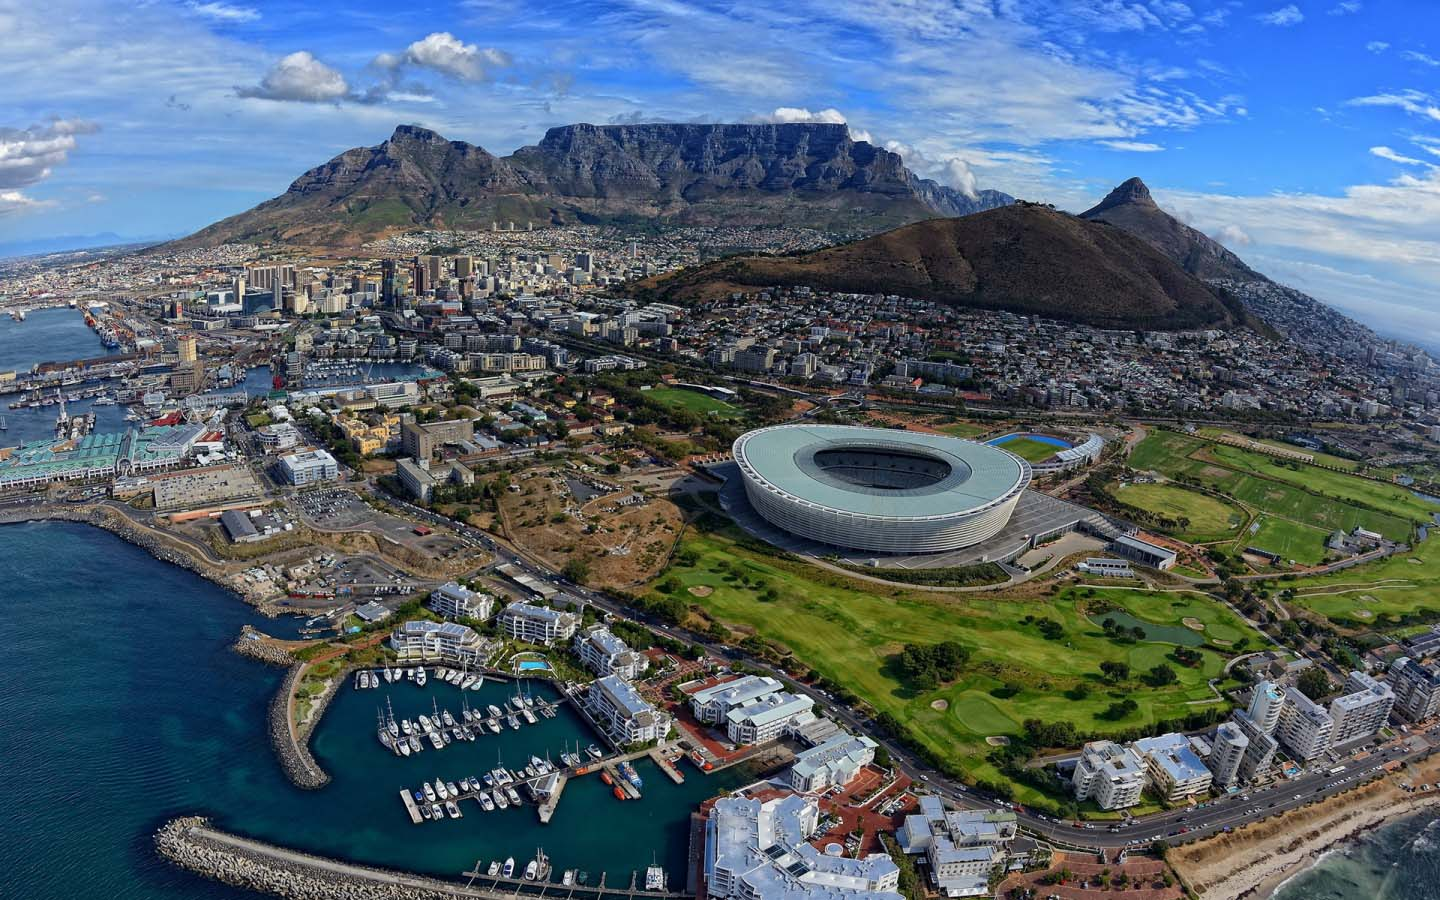 DAY 7,8,9,10: Cape Town - One of the most beautiful cities in the world! Experience the highest sea cliffs & freshest air at the South-Western tip of Africa.